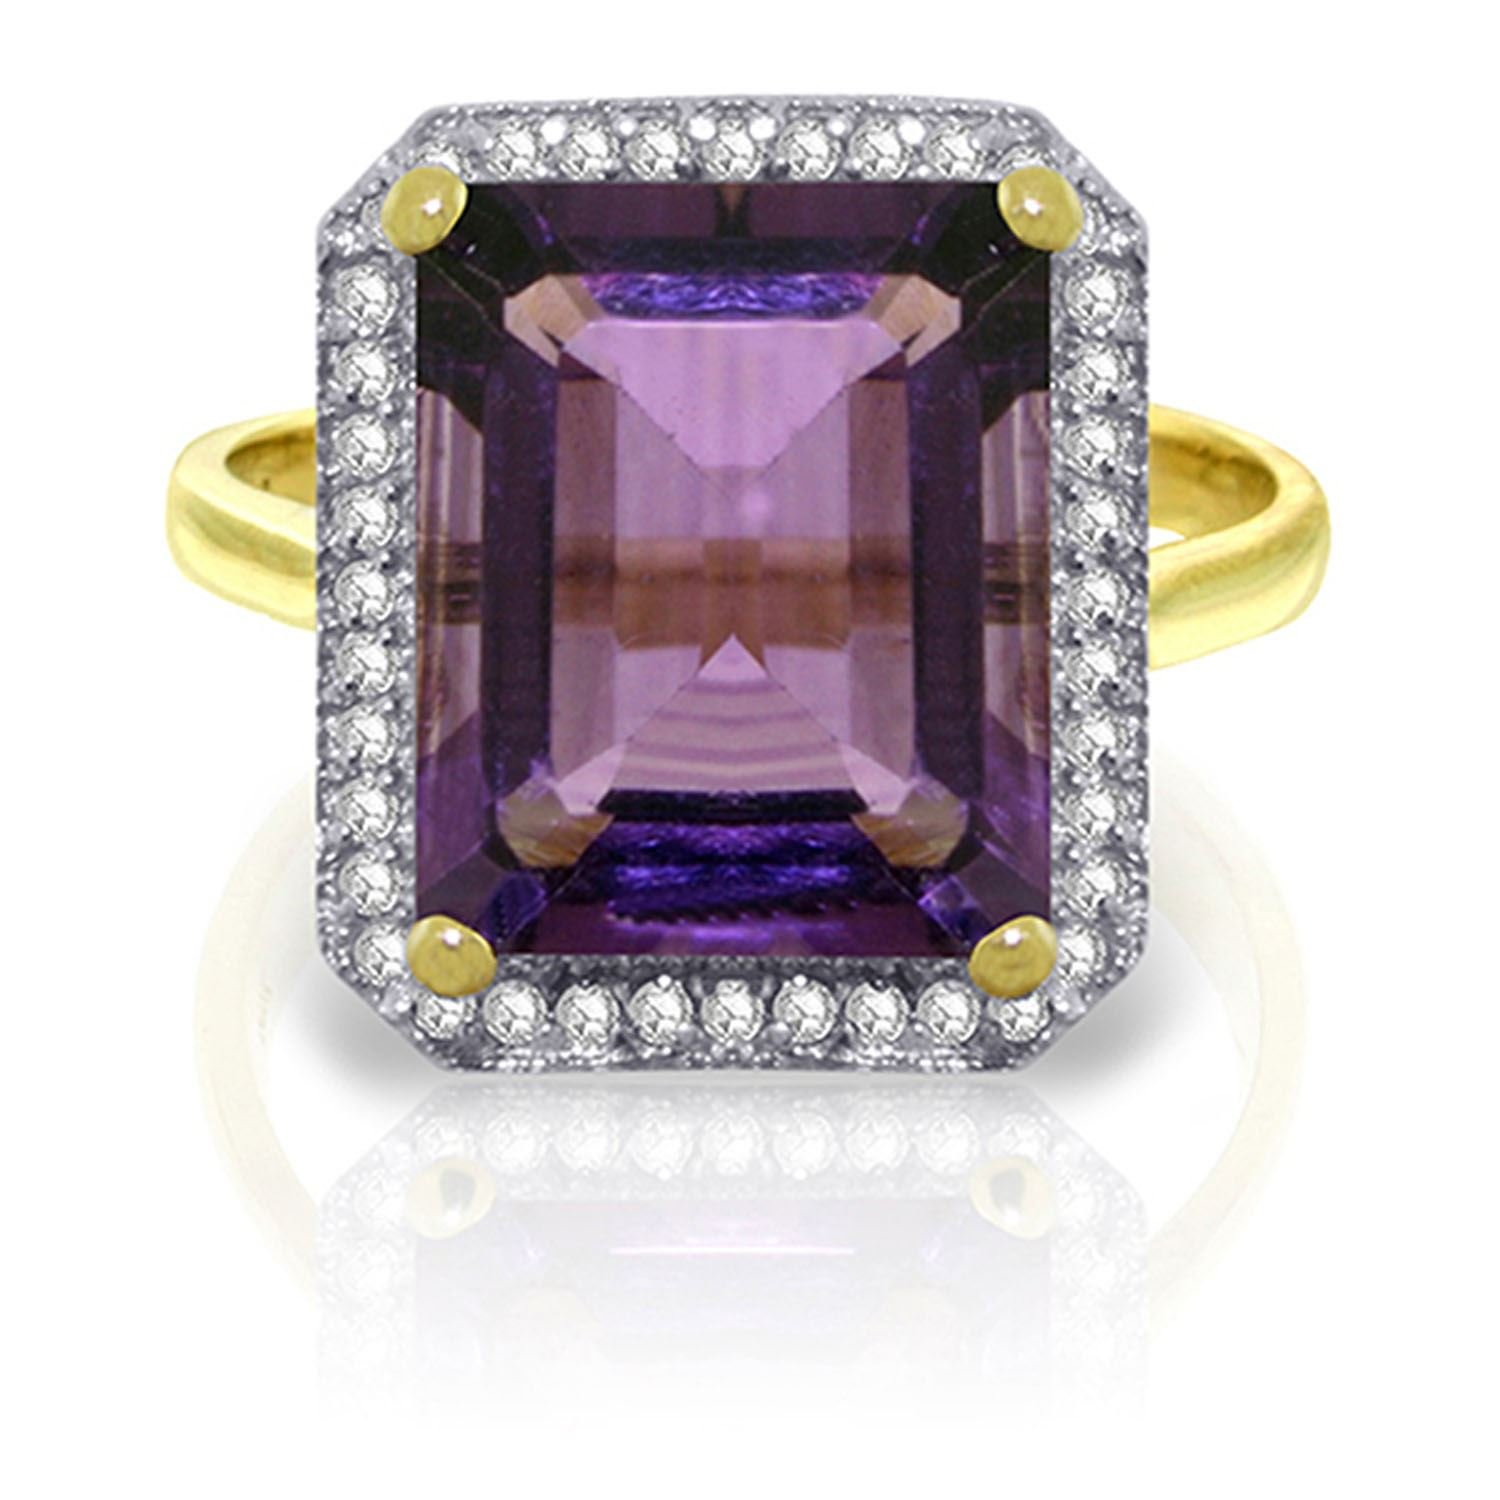 ALARRI 5.8 Carat 14K Solid Gold Quivering Love Amethyst Diamond Ring With Ring Size 9